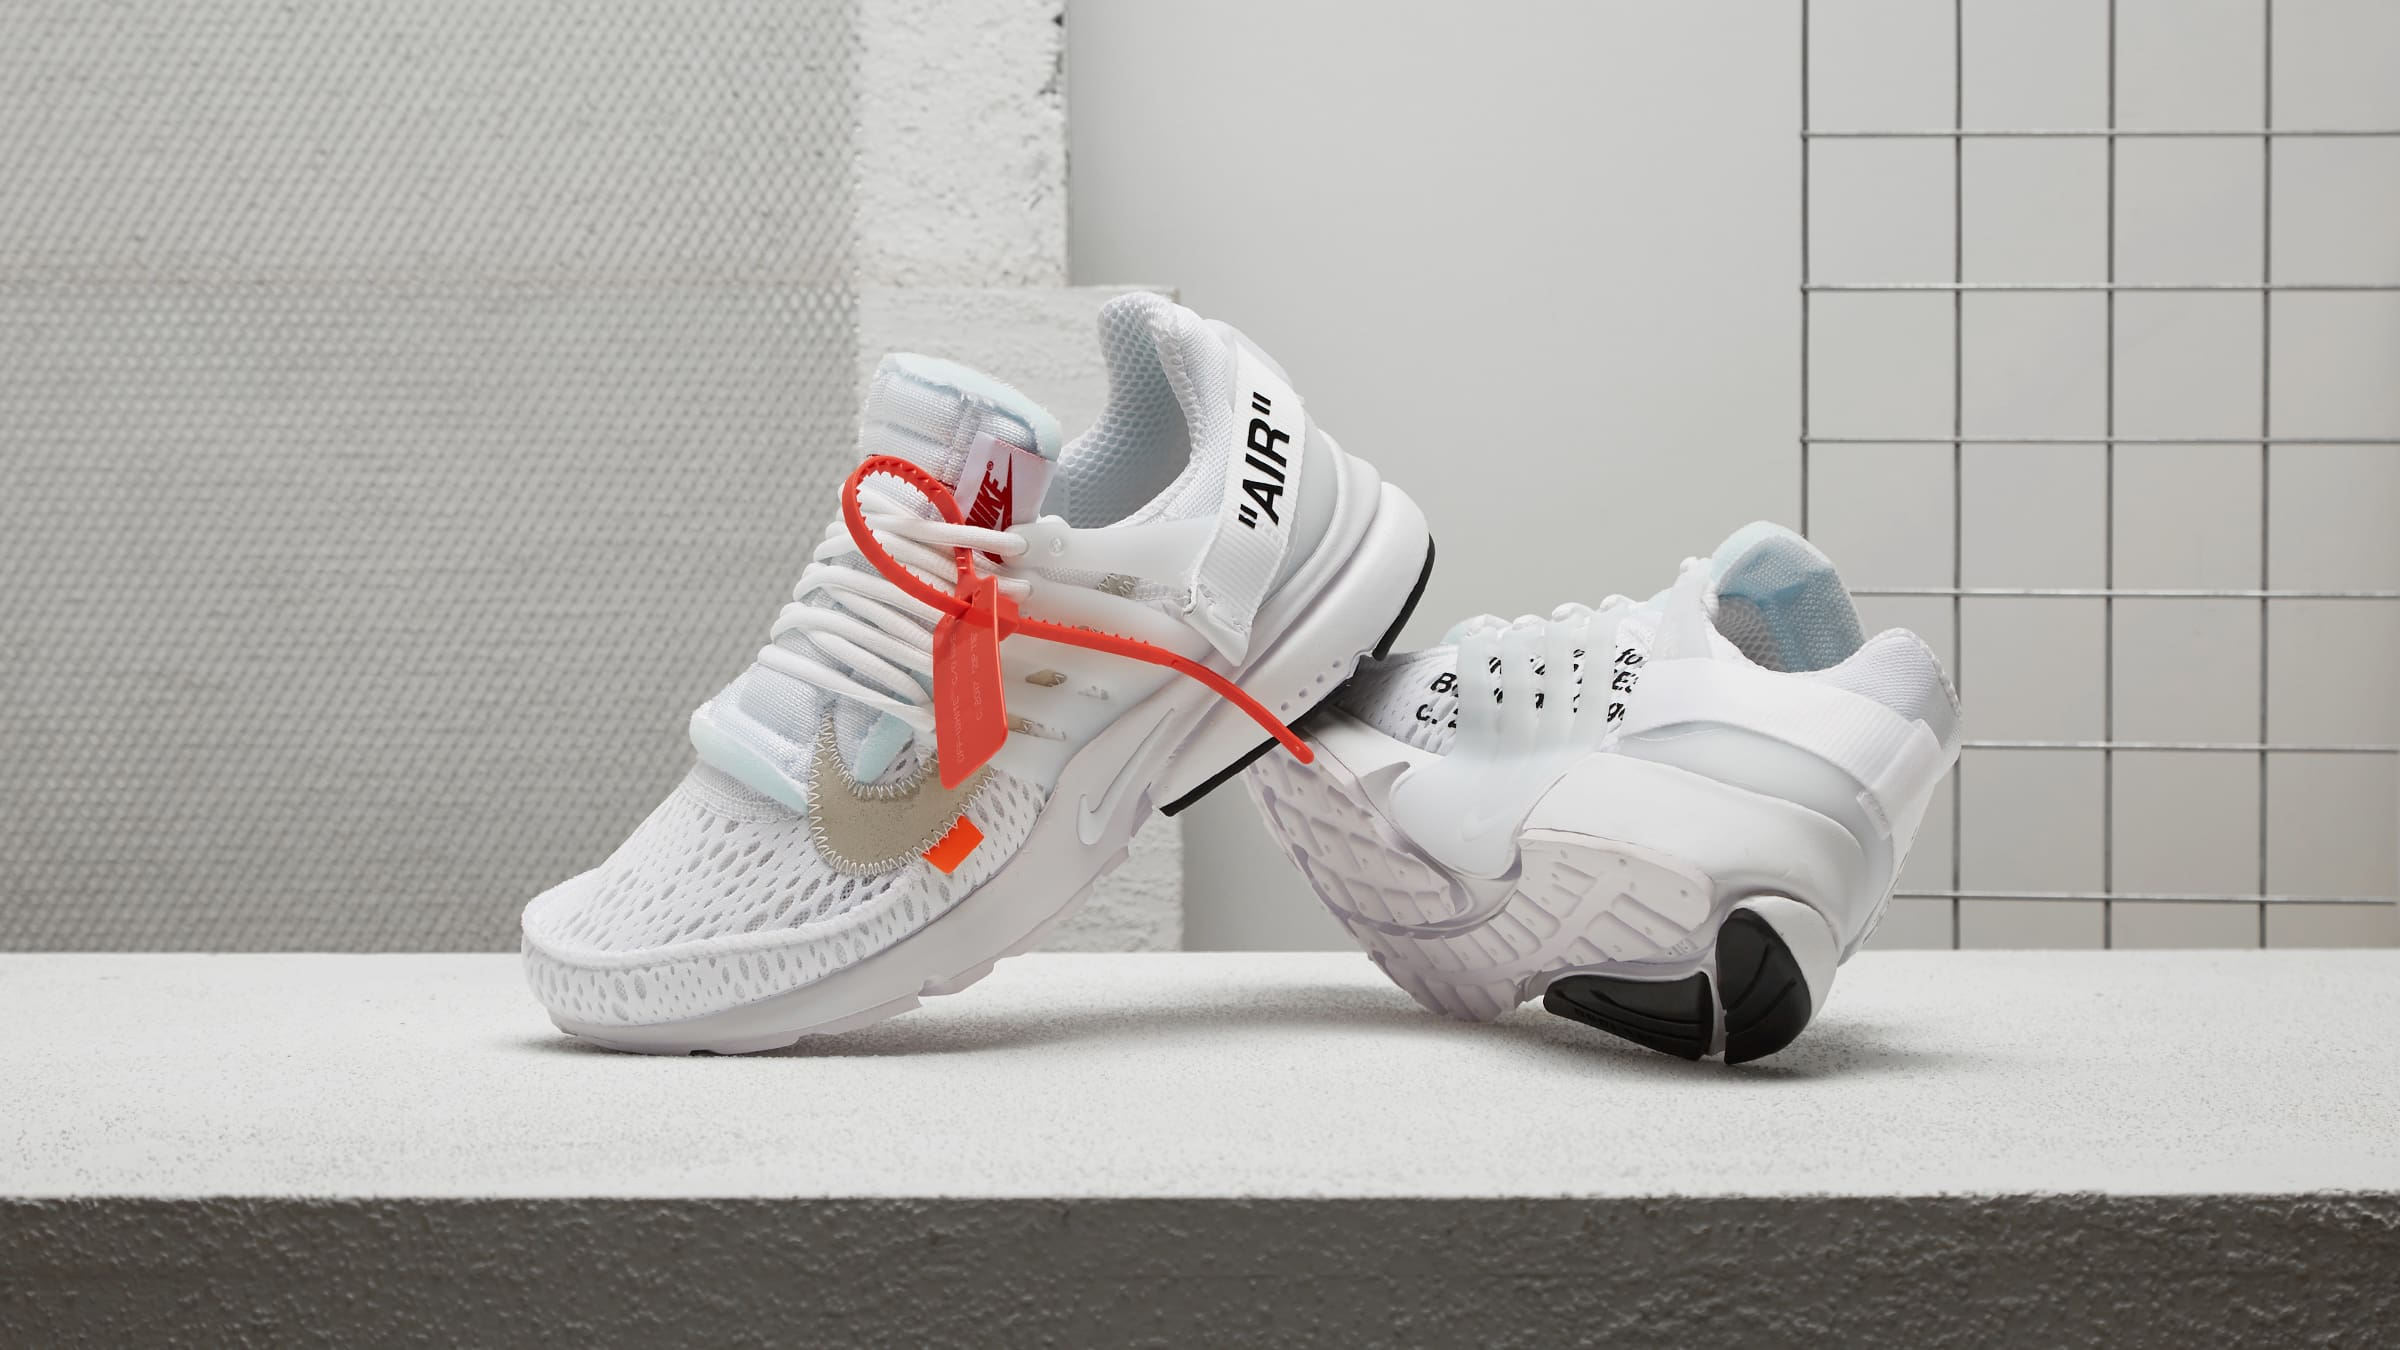 Where to Buy the Off-White x Nike Presto 'White'